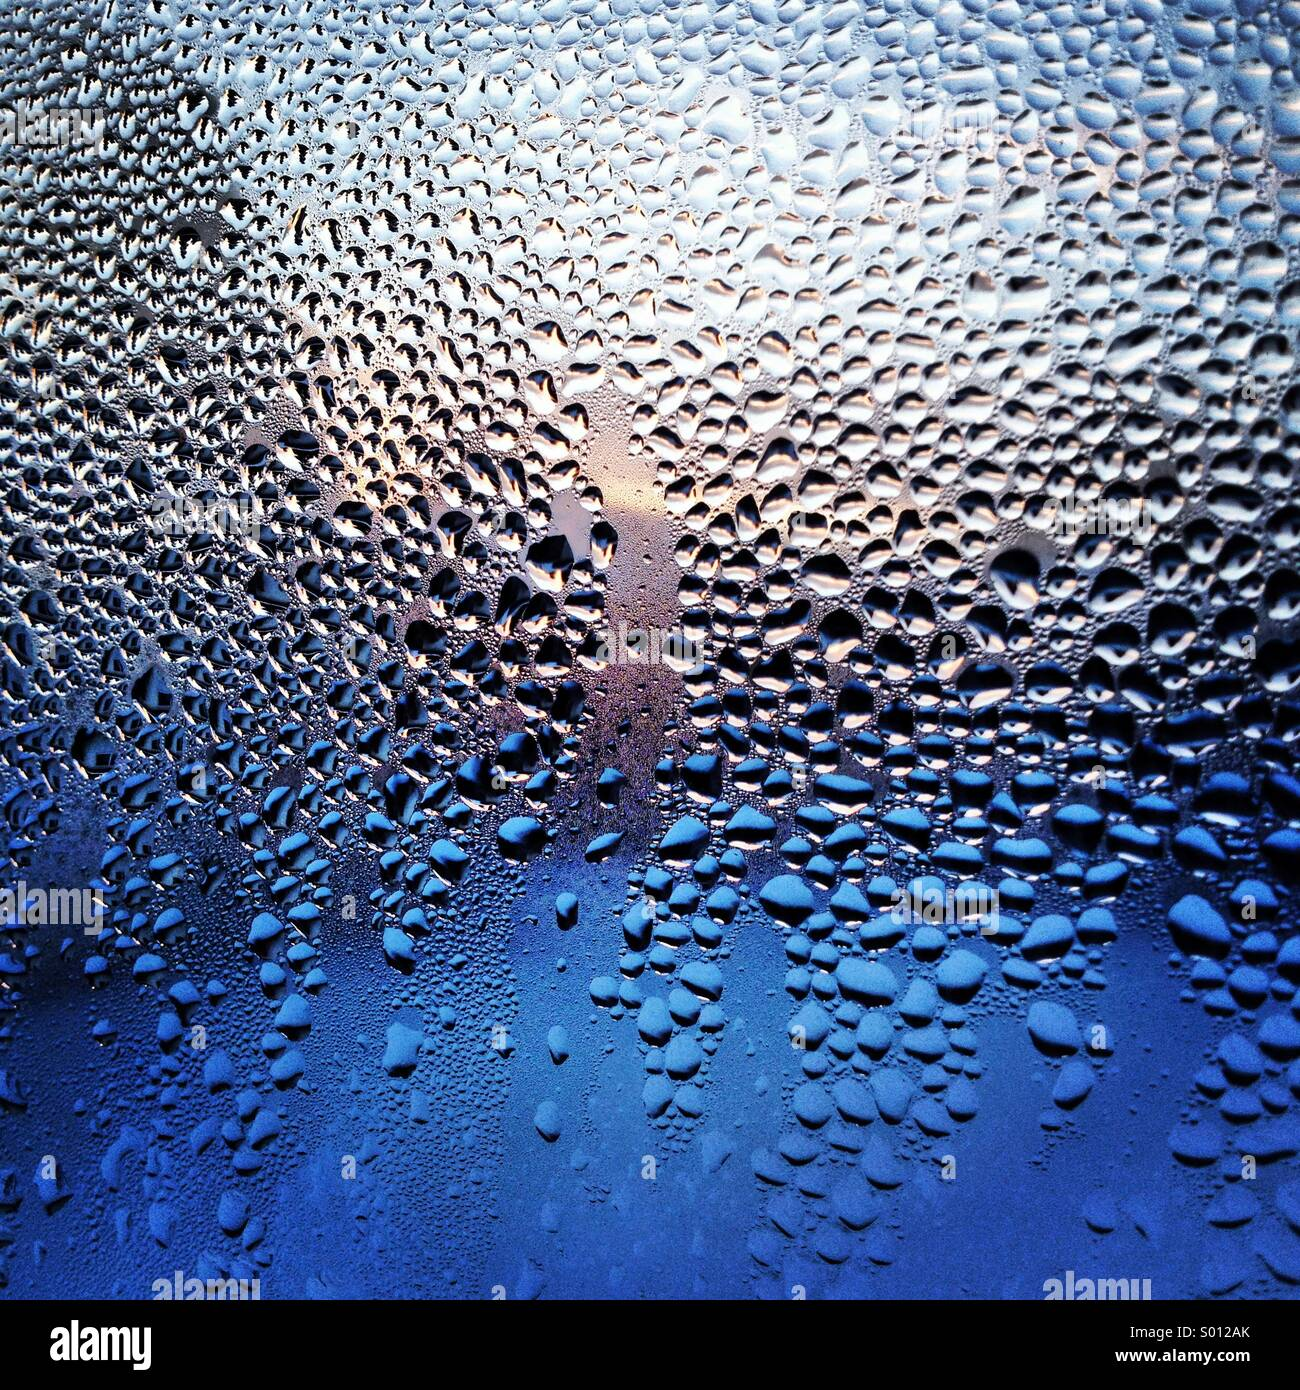 Condensation on a window during a winter sunrise - Stock Image